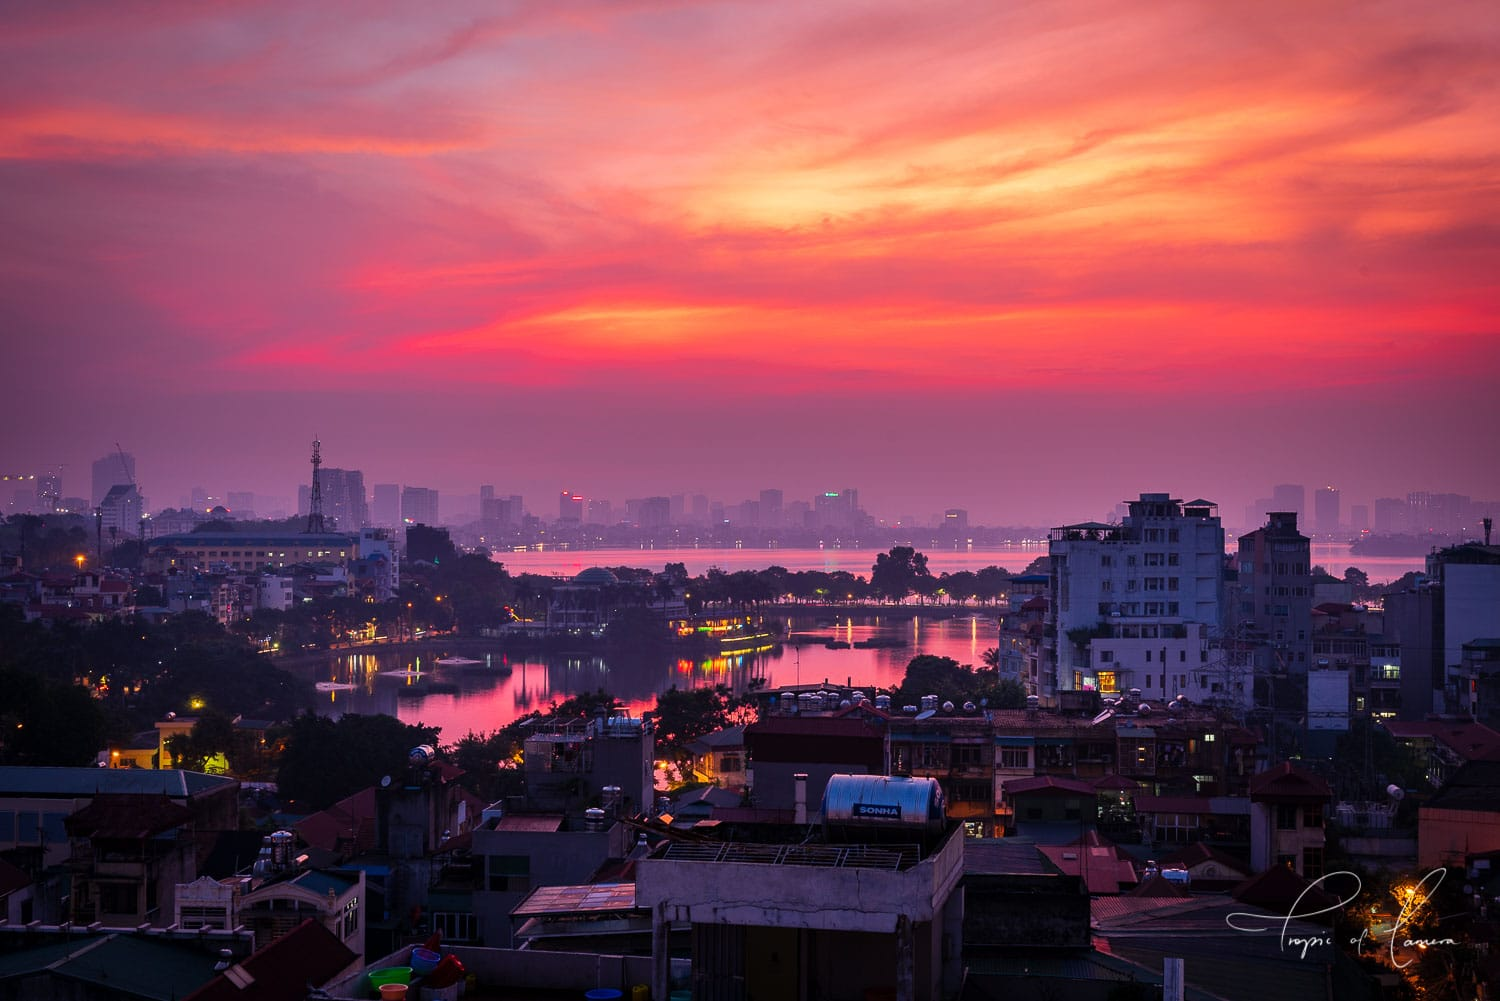 Sunset over Hanoi, Vietnam